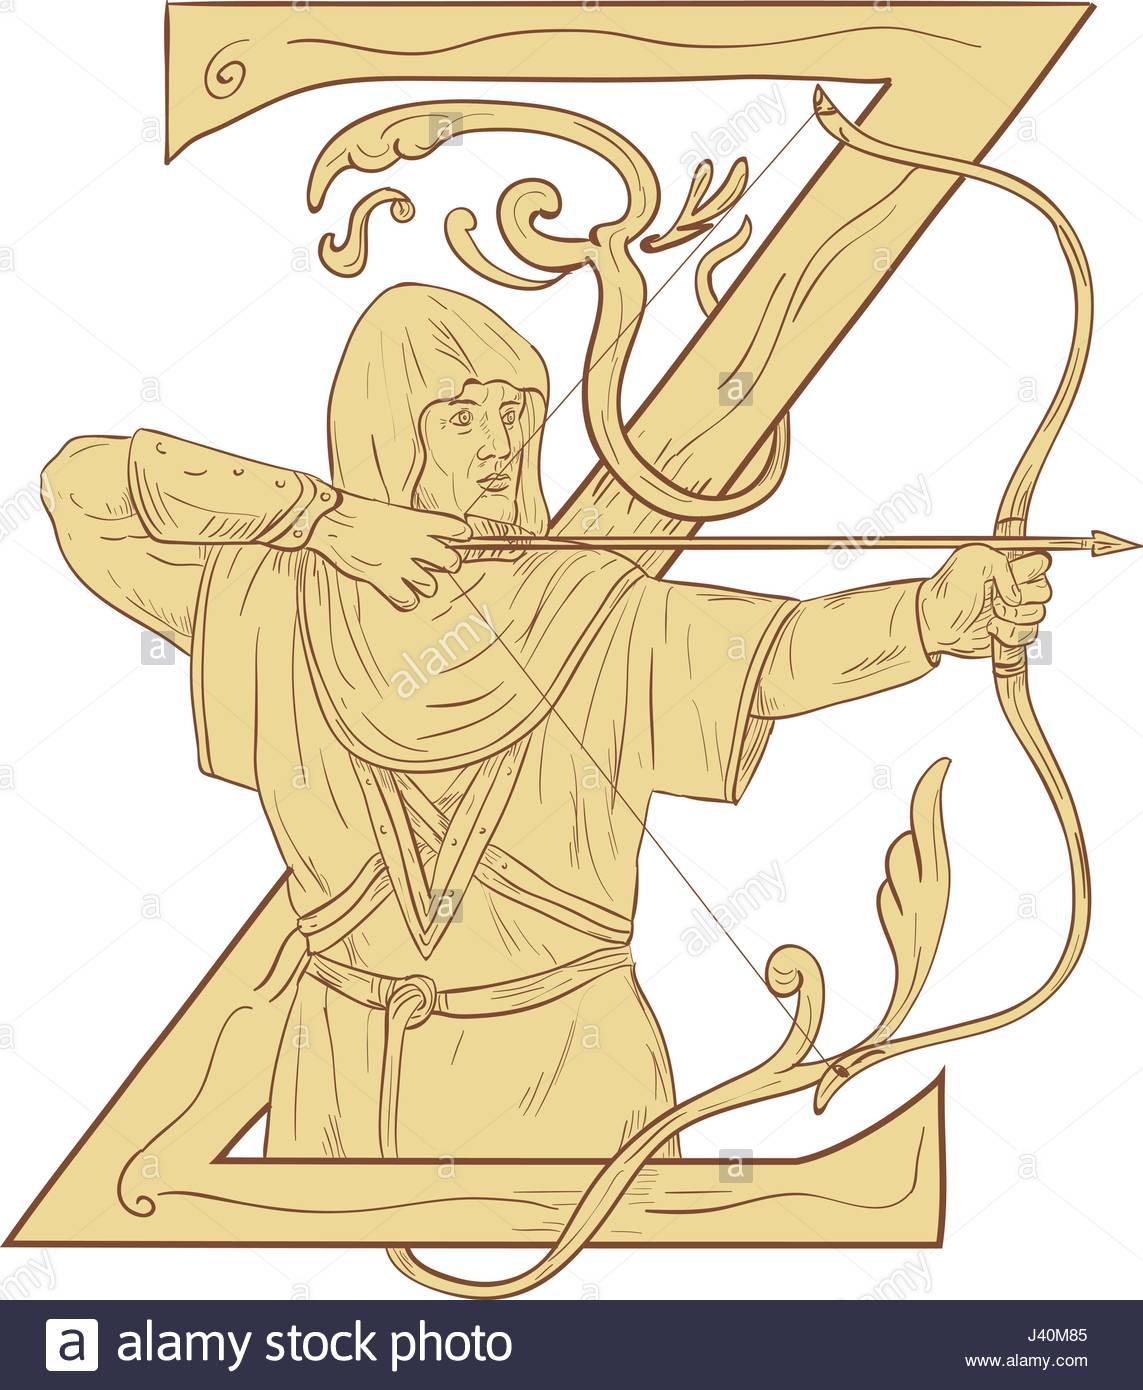 1143x1390 Drawing Sketch Style Illustration Of A Medieval Archer With Bow